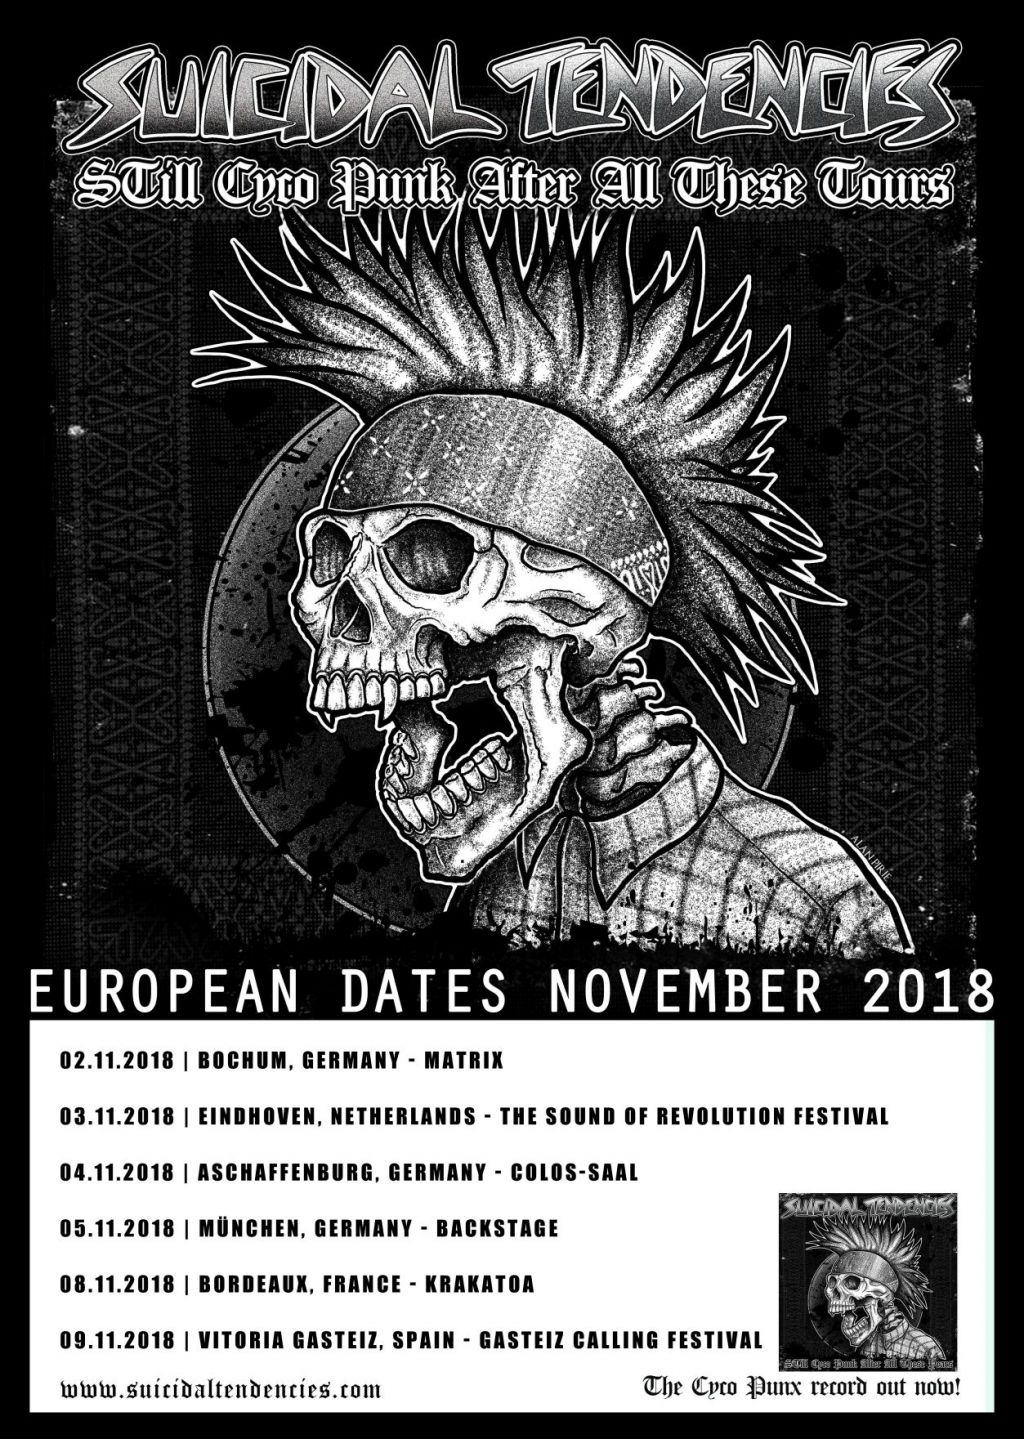 STILL CYCO PUNK EU TOUR AHEAD!